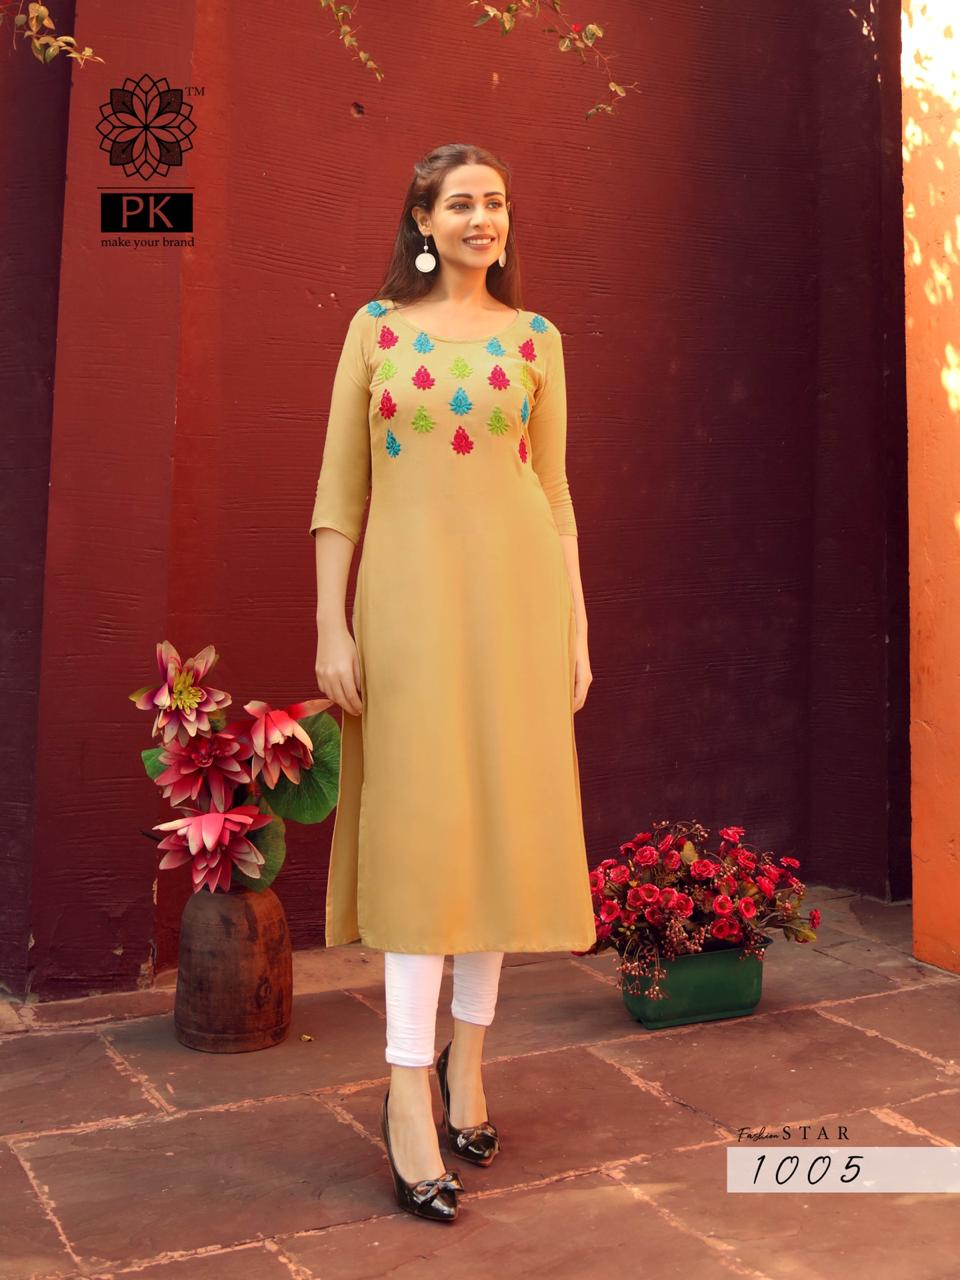 Pk Fashion Aradhna Fashion Star Vol 1 Heavy Rayon With Embroidery Work Readymade Kurtis At Wholesale Rate